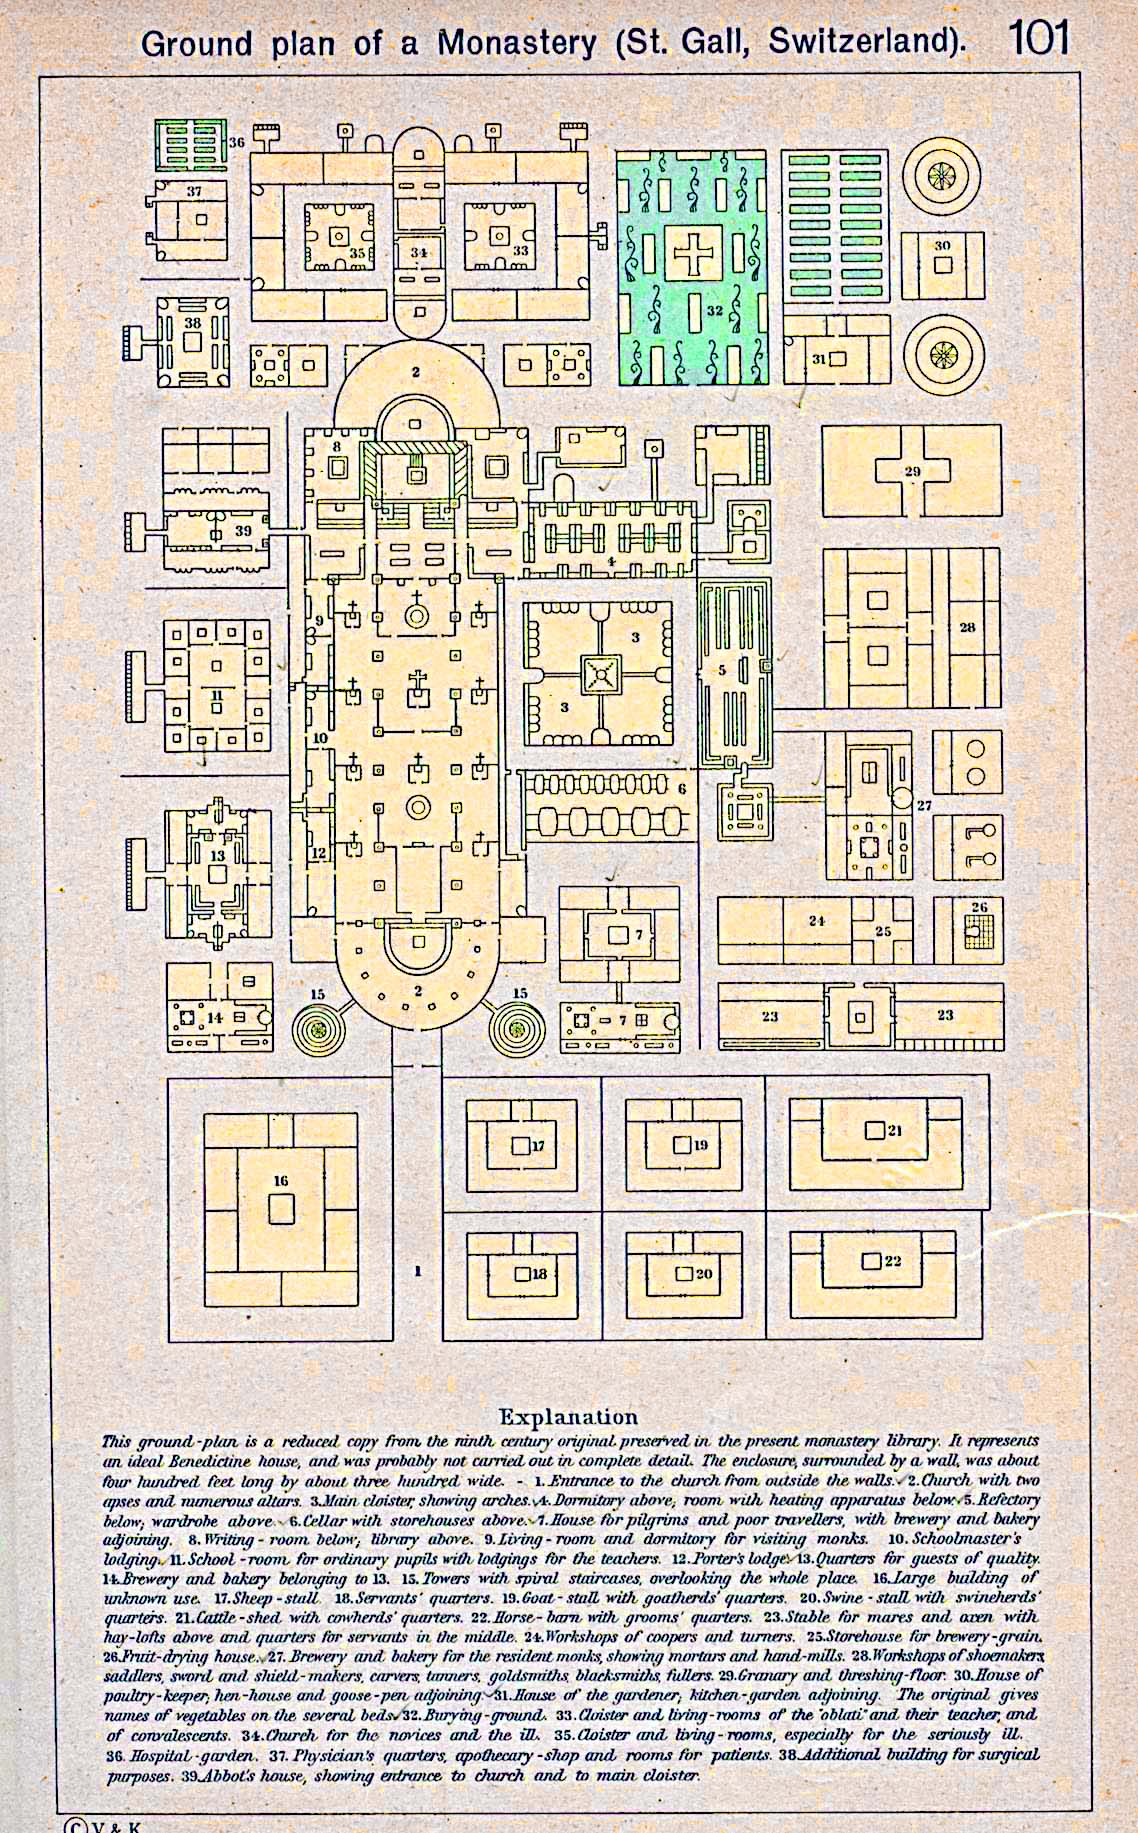 Map of the Ground Plan of St. Gall Monastery, Switzerland; ca. 819-826 A.D.